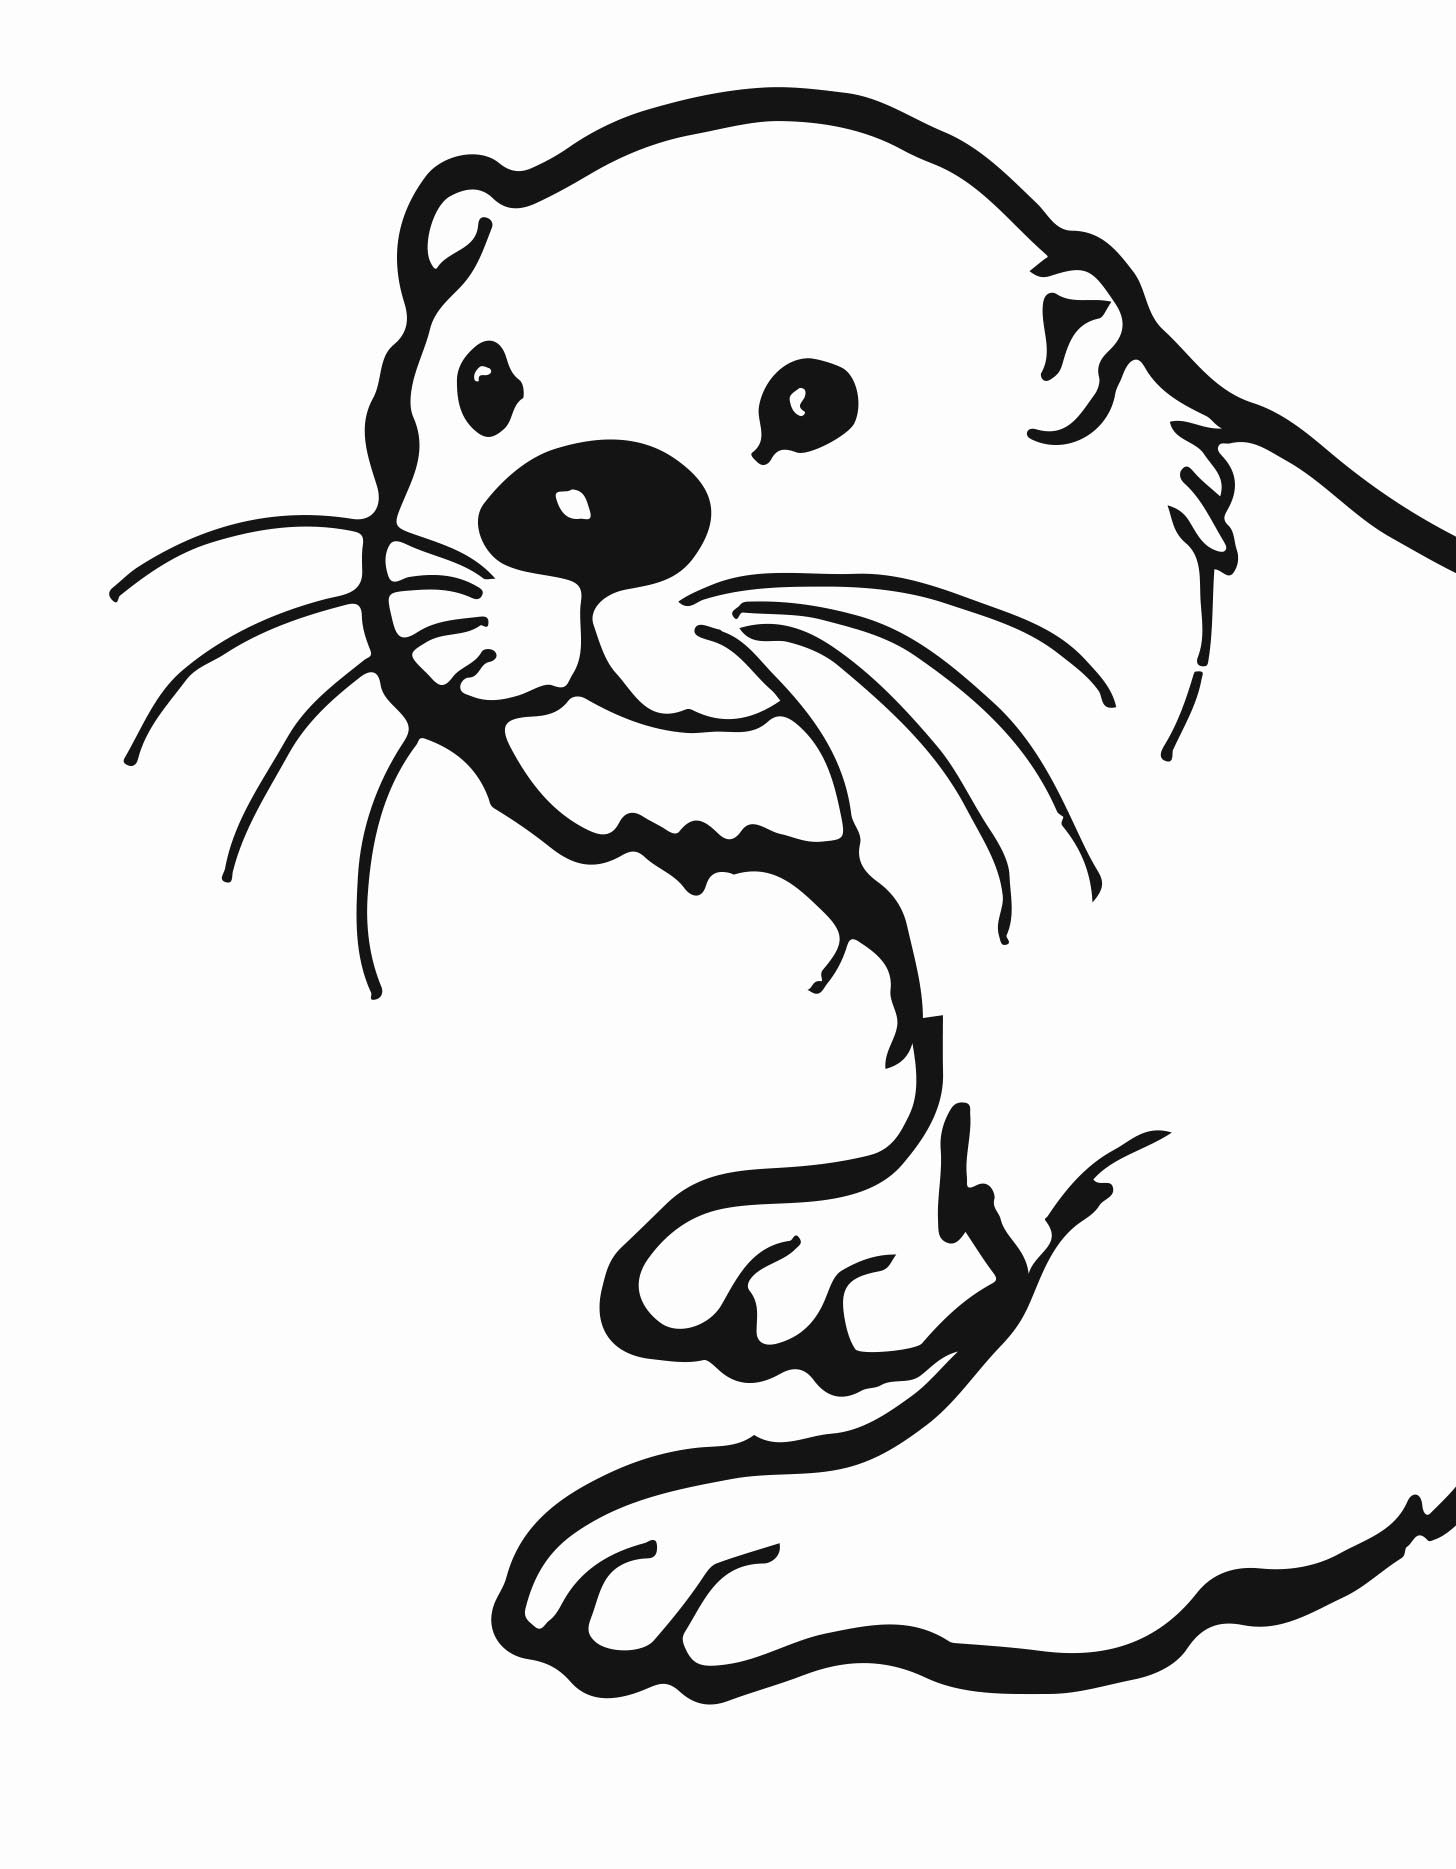 Otter clipart. River free printable download